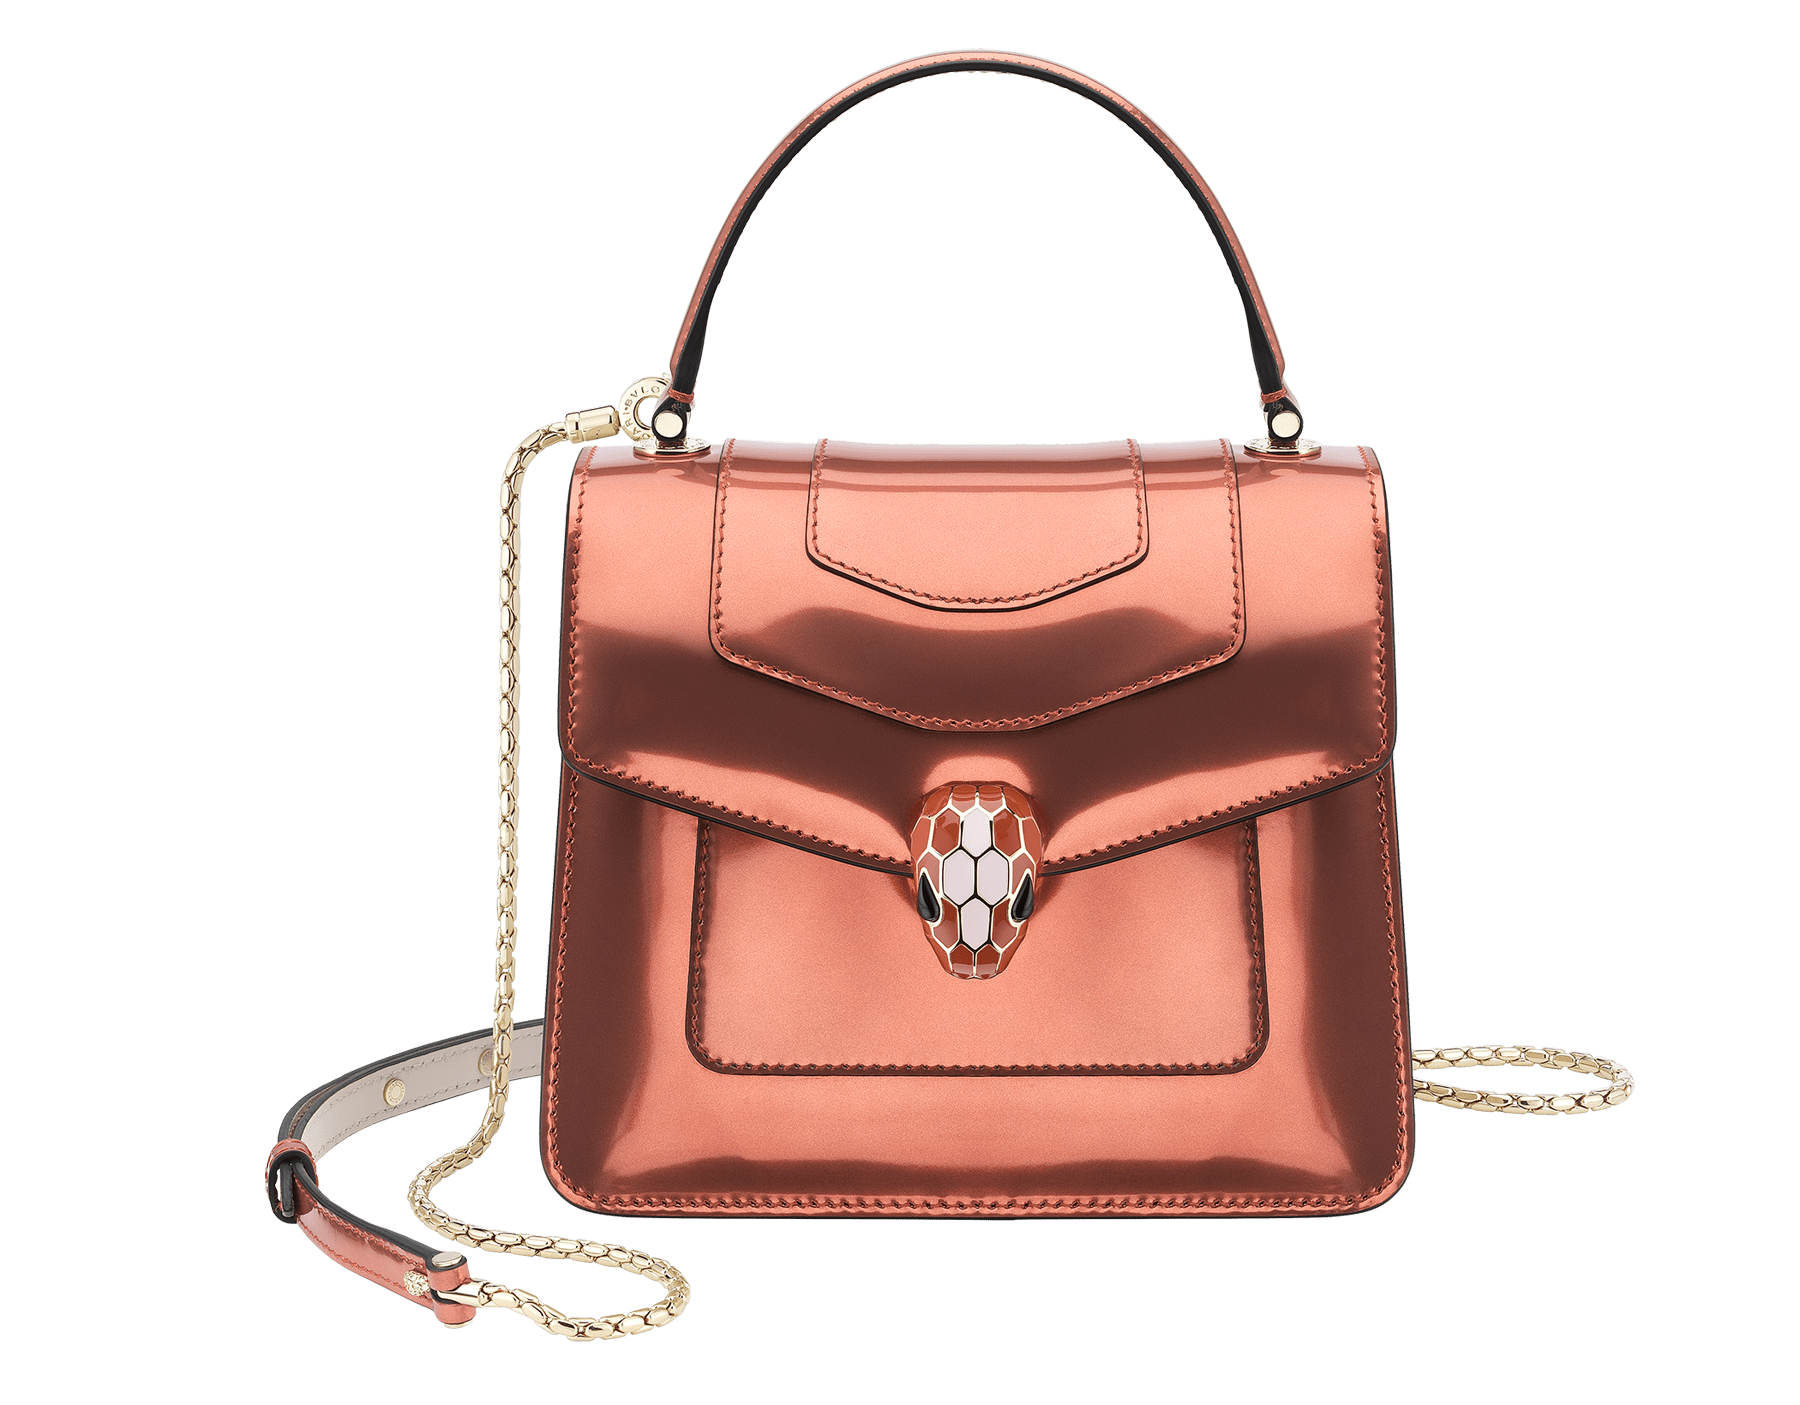 Serpenti Forever crossbody bag in imperial topaz brushed metallic calf leather with Roman garnet, rosa di francia and white agate calf leather sides. Iconic snakehead closure in light gold plated brass embellished with imperial topaz and white enamel and black onyx eyes. 288968 image 1